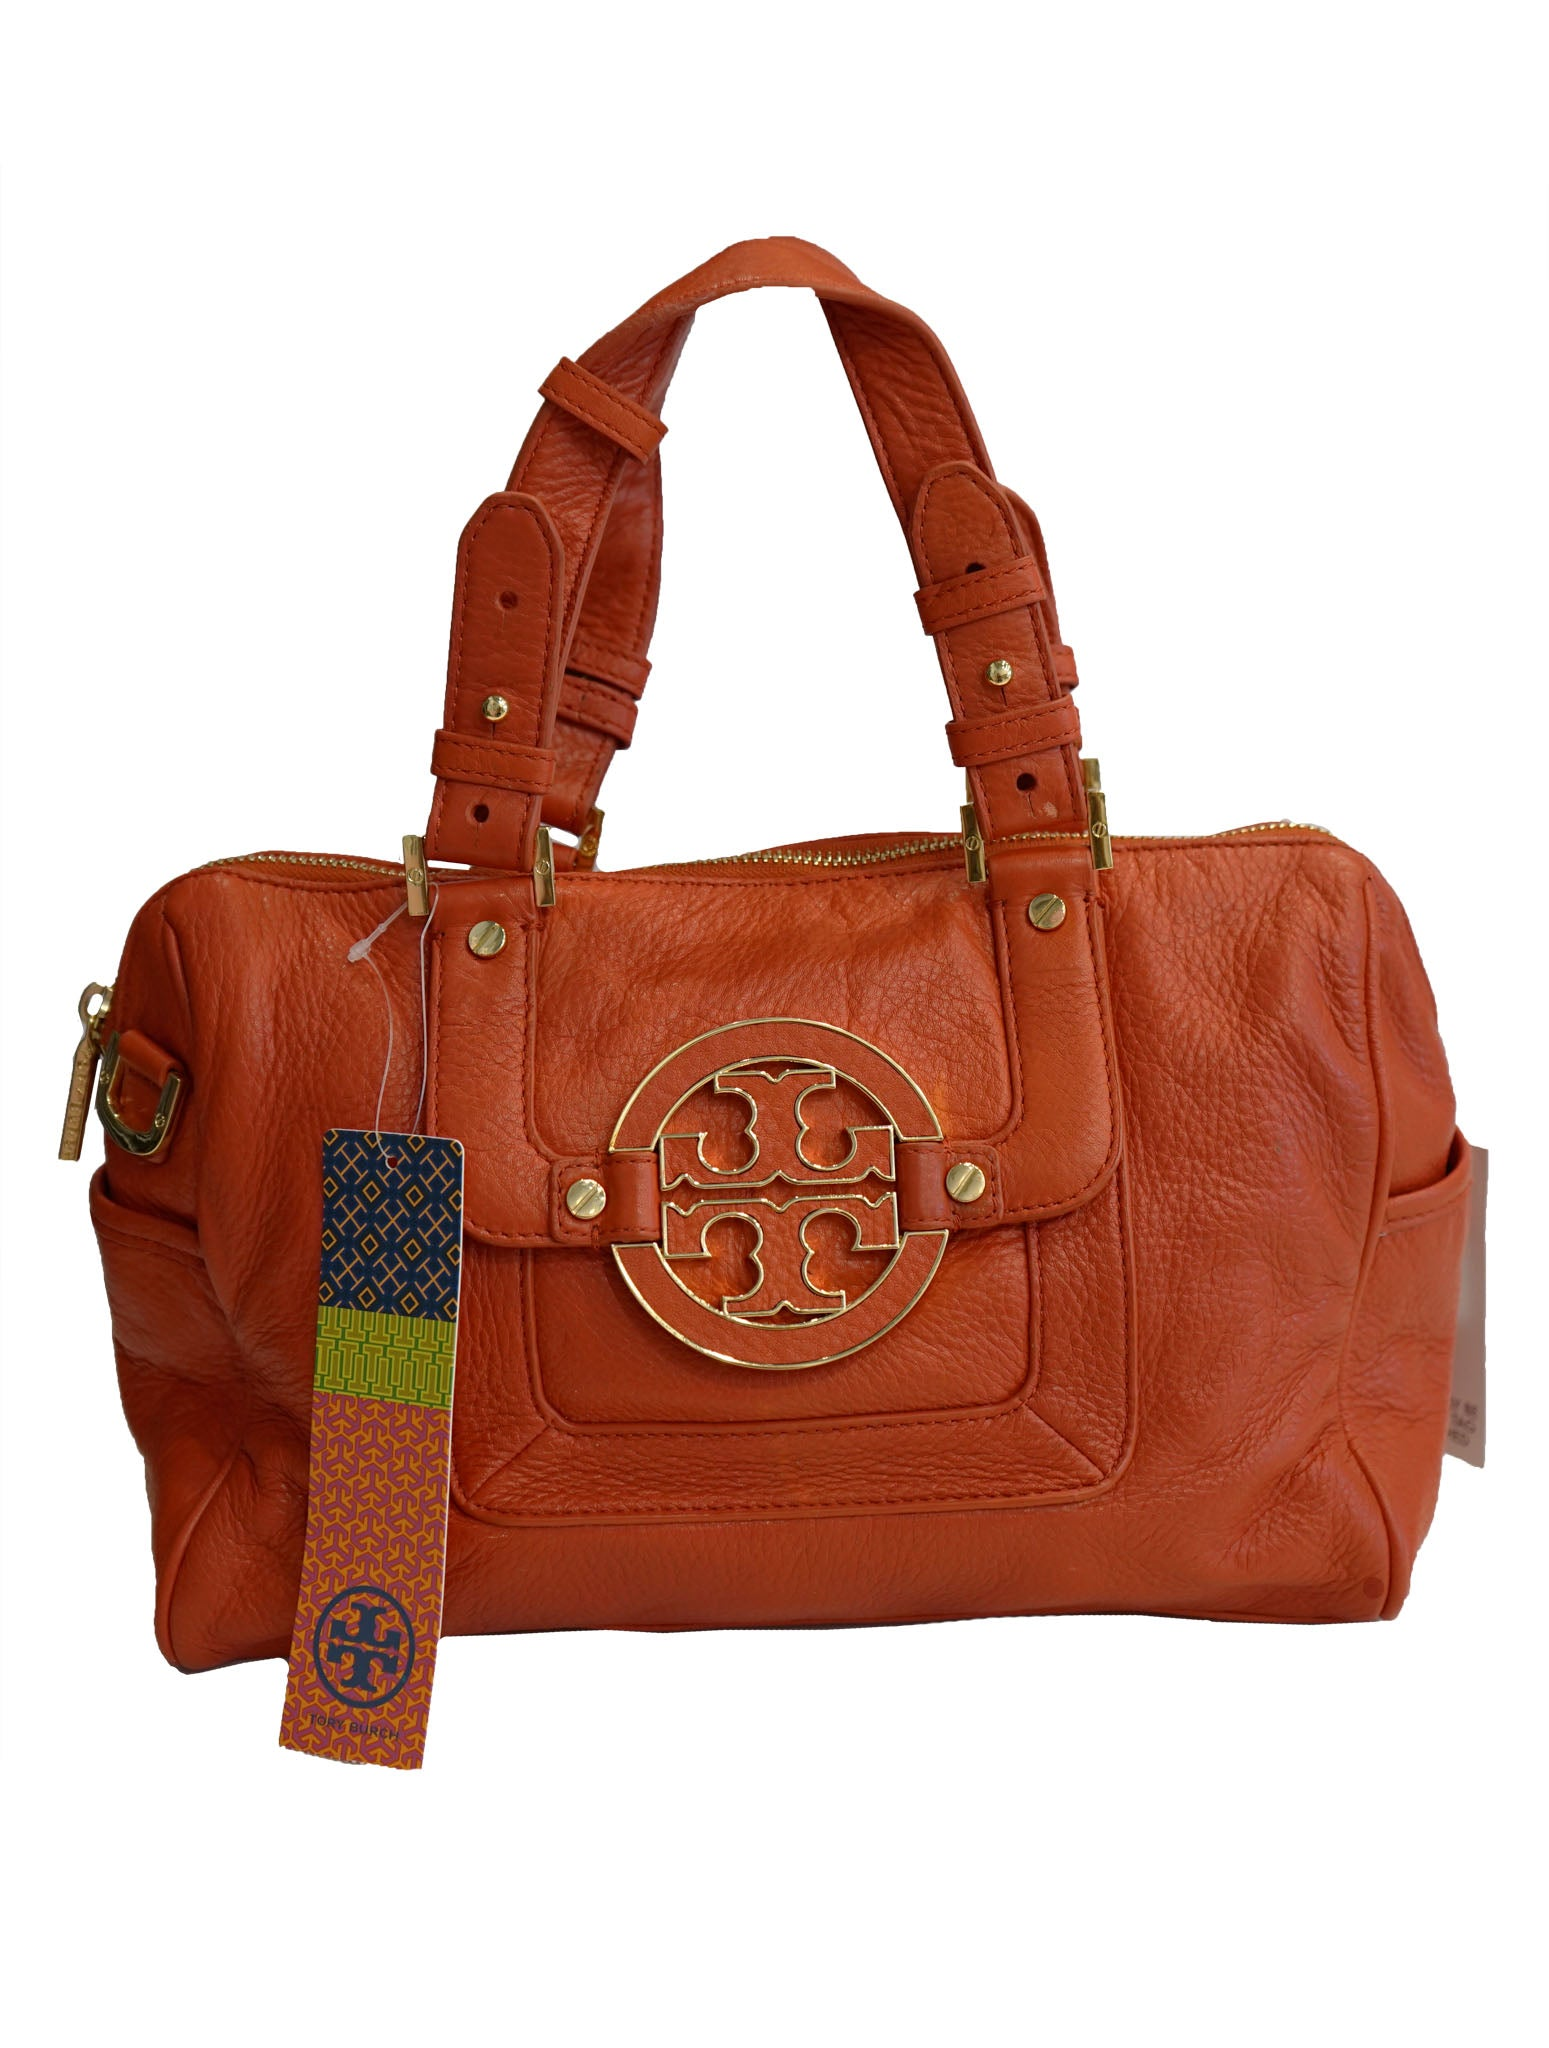 Tory Burch Bag, Women's Designers Bag